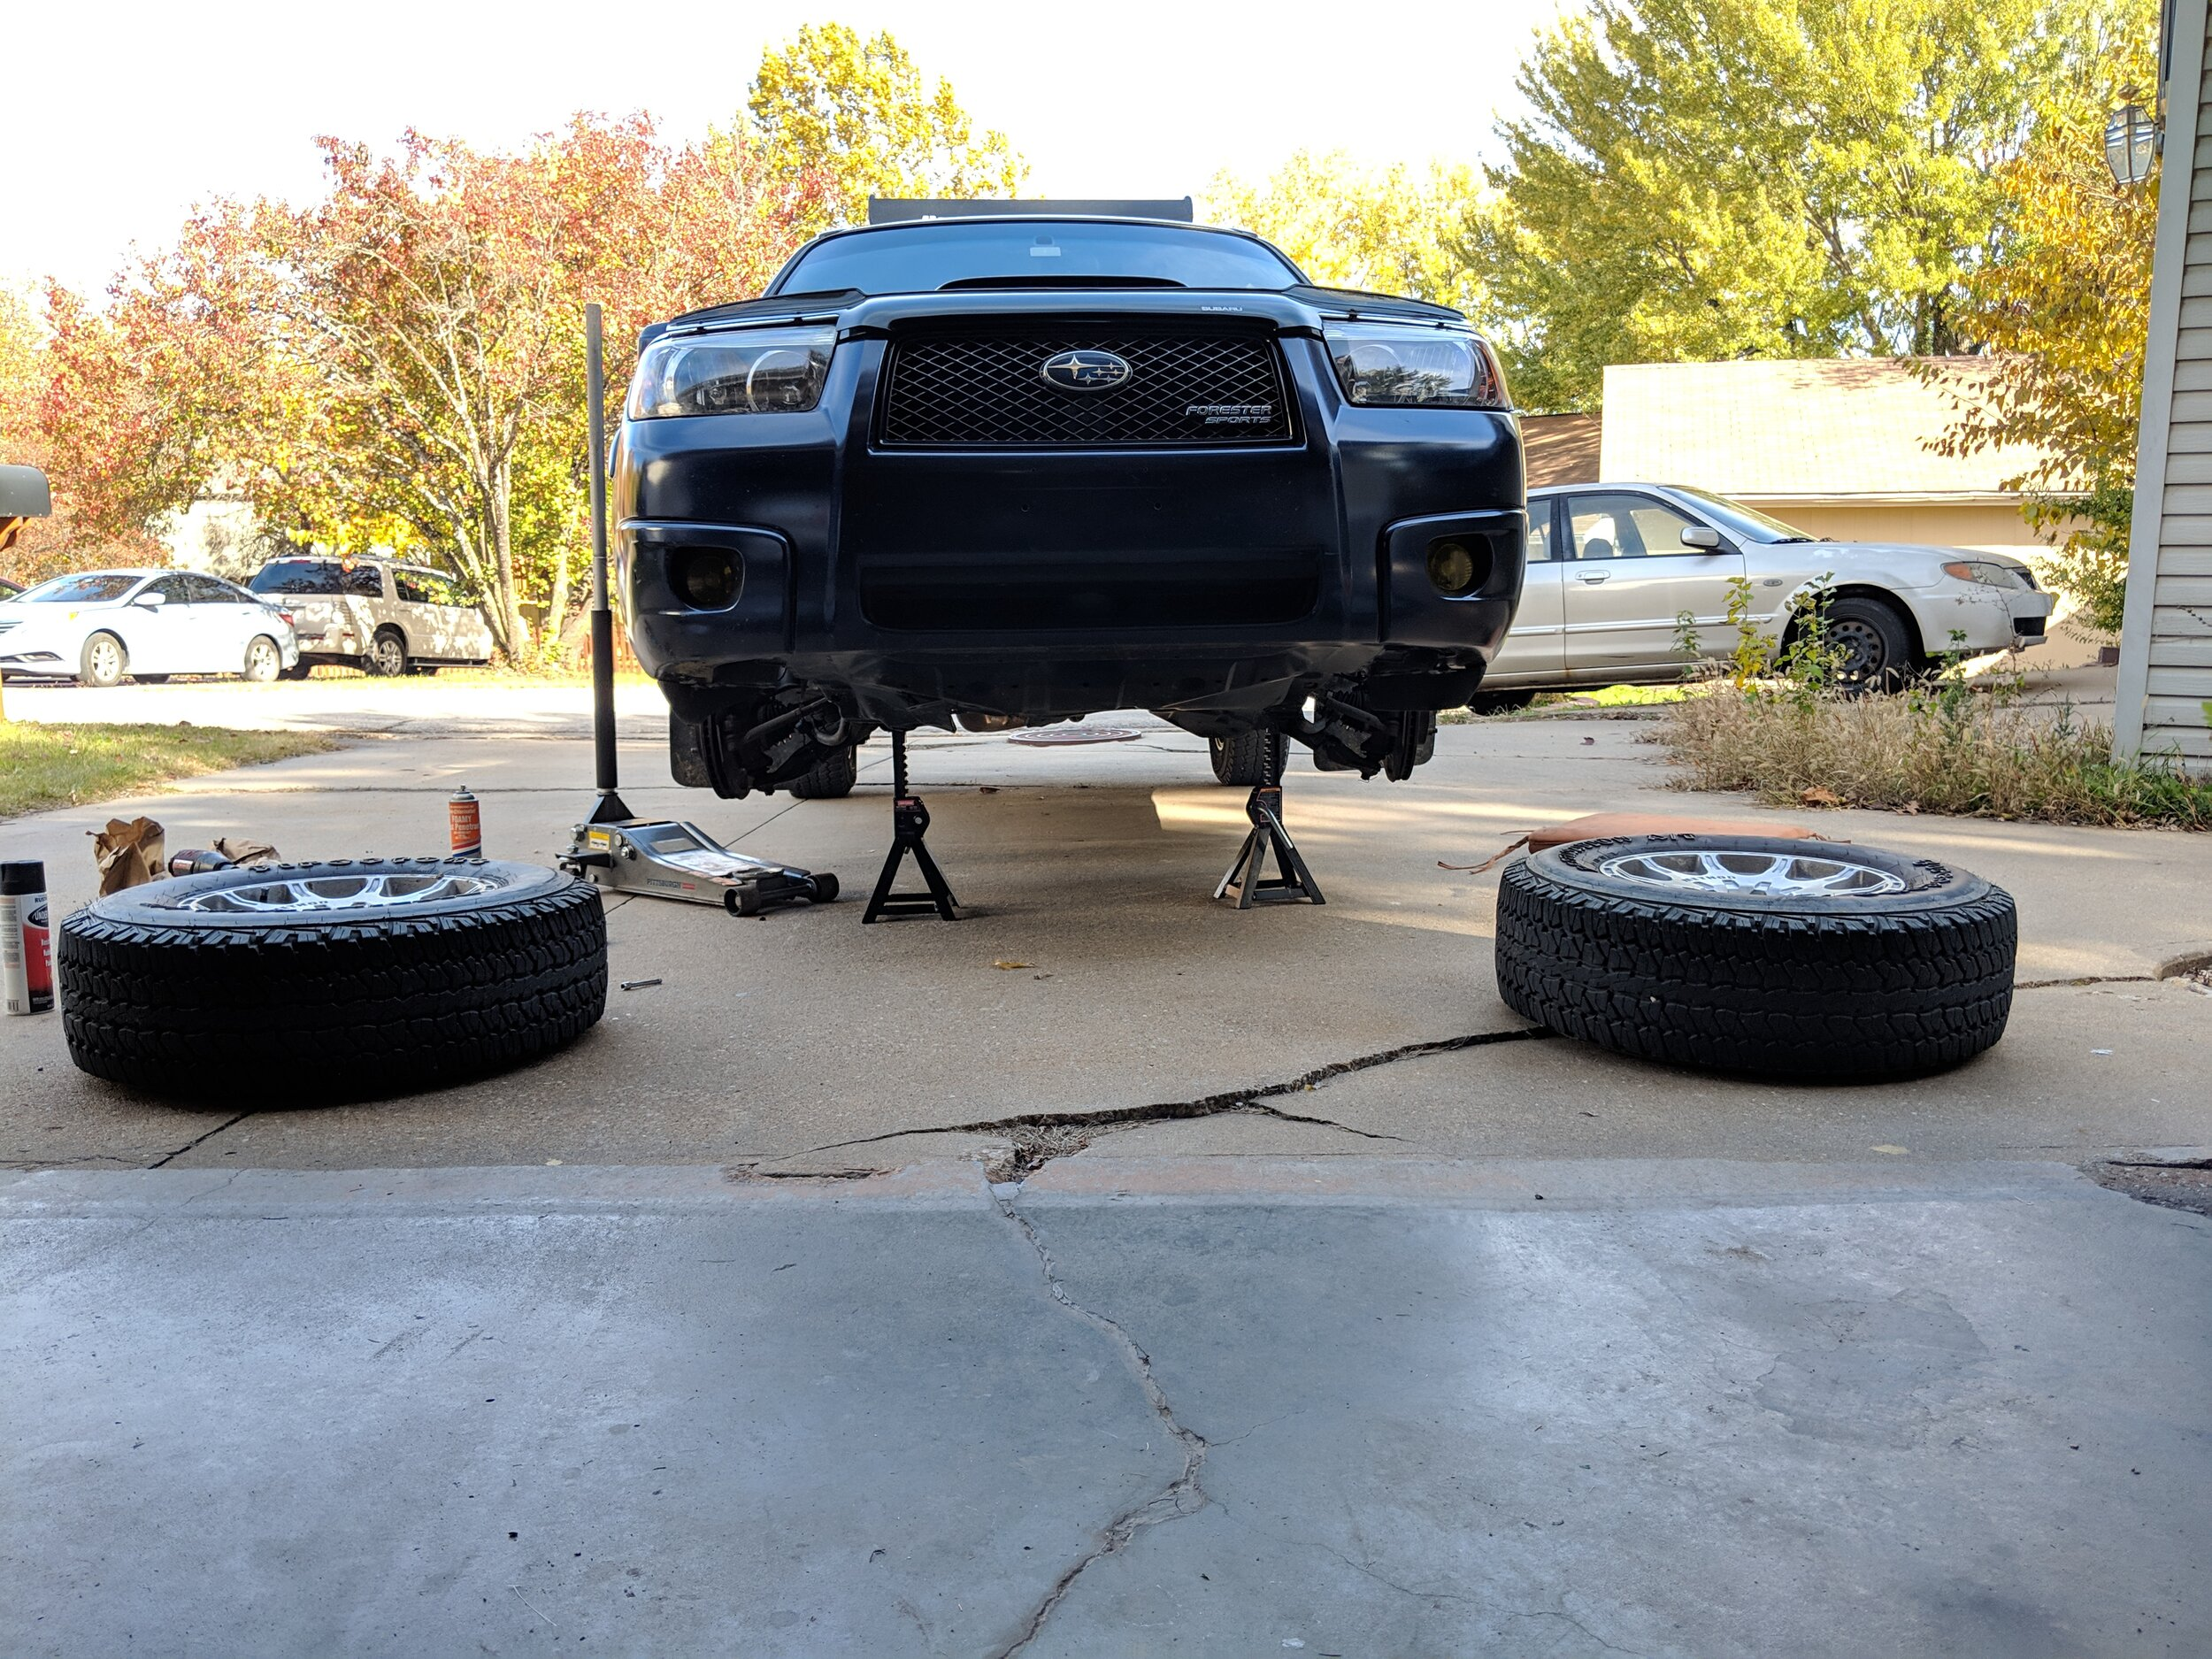 putting your subaru up on jack stands getting your subaru in the air without going to a rally x event blingstrom putting your subaru up on jack stands